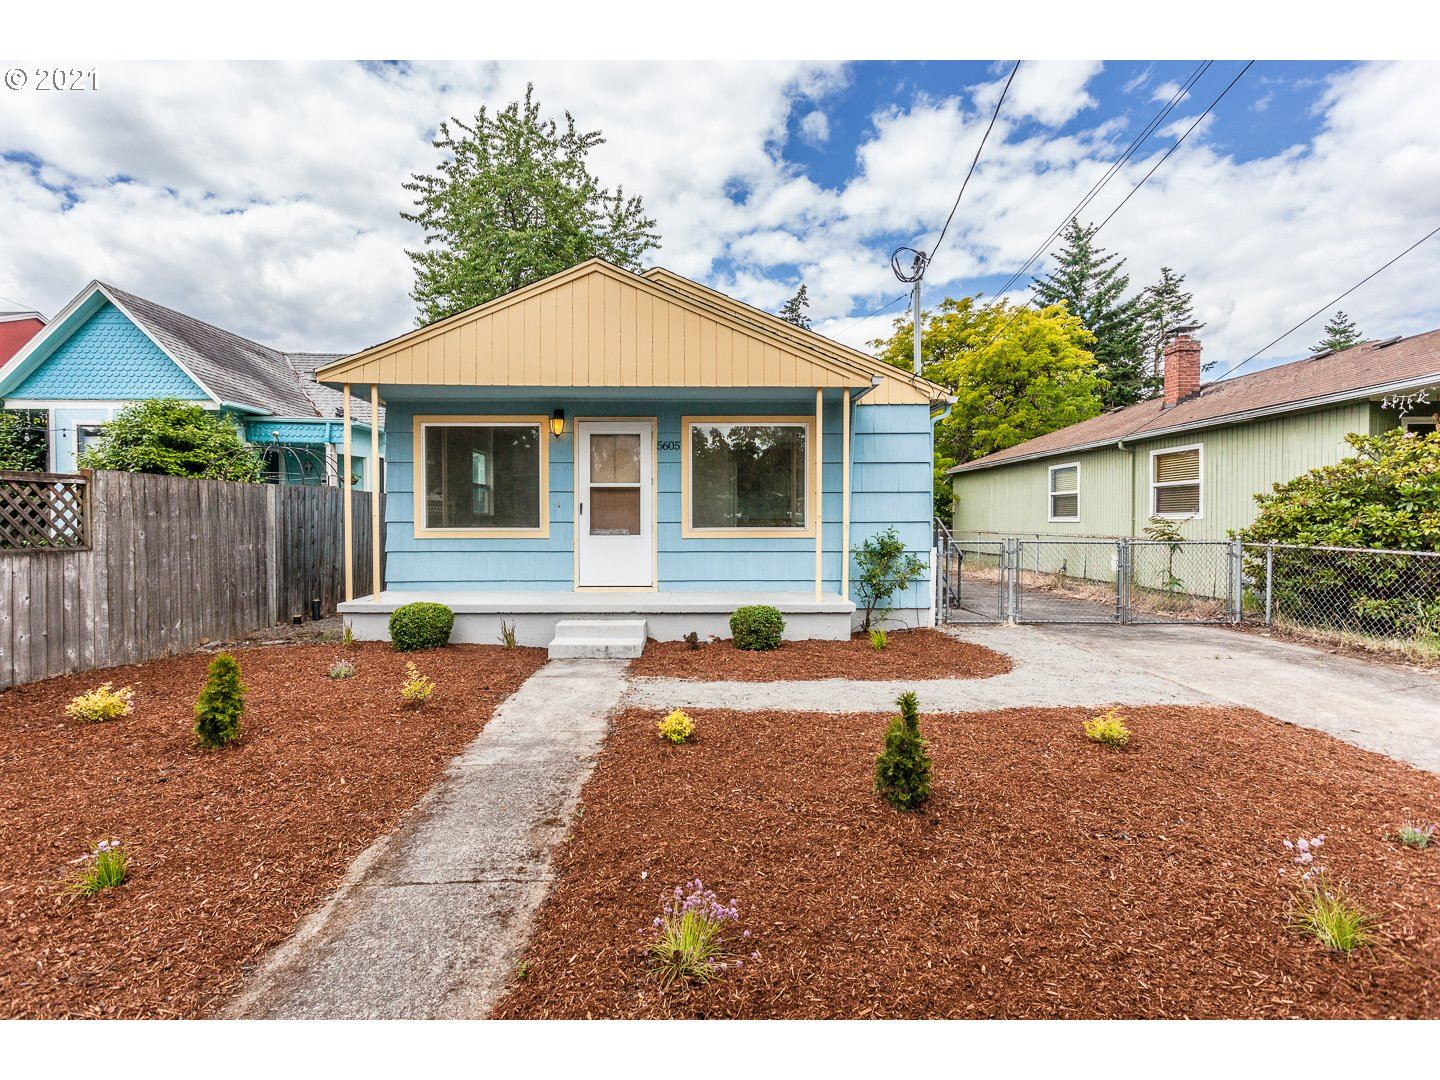 5605 SE 65TH AVE, Portland, OR 97206 - MLS#: 21444271